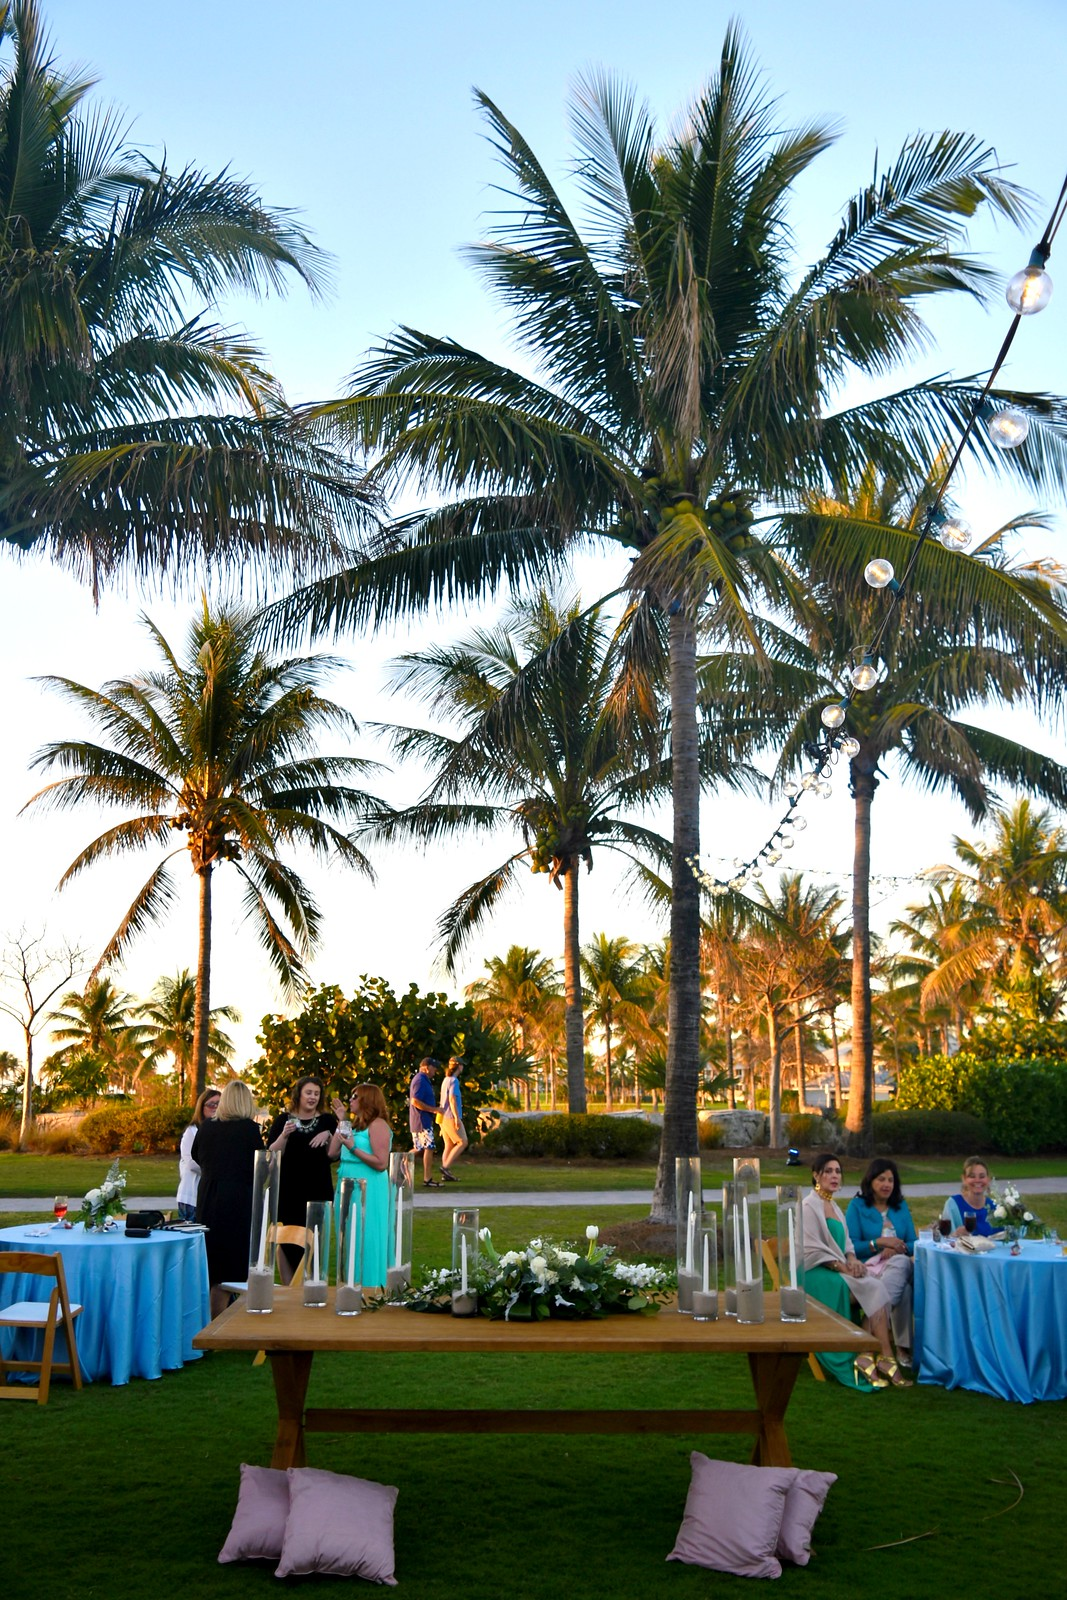 FL outdoor/beach wedding